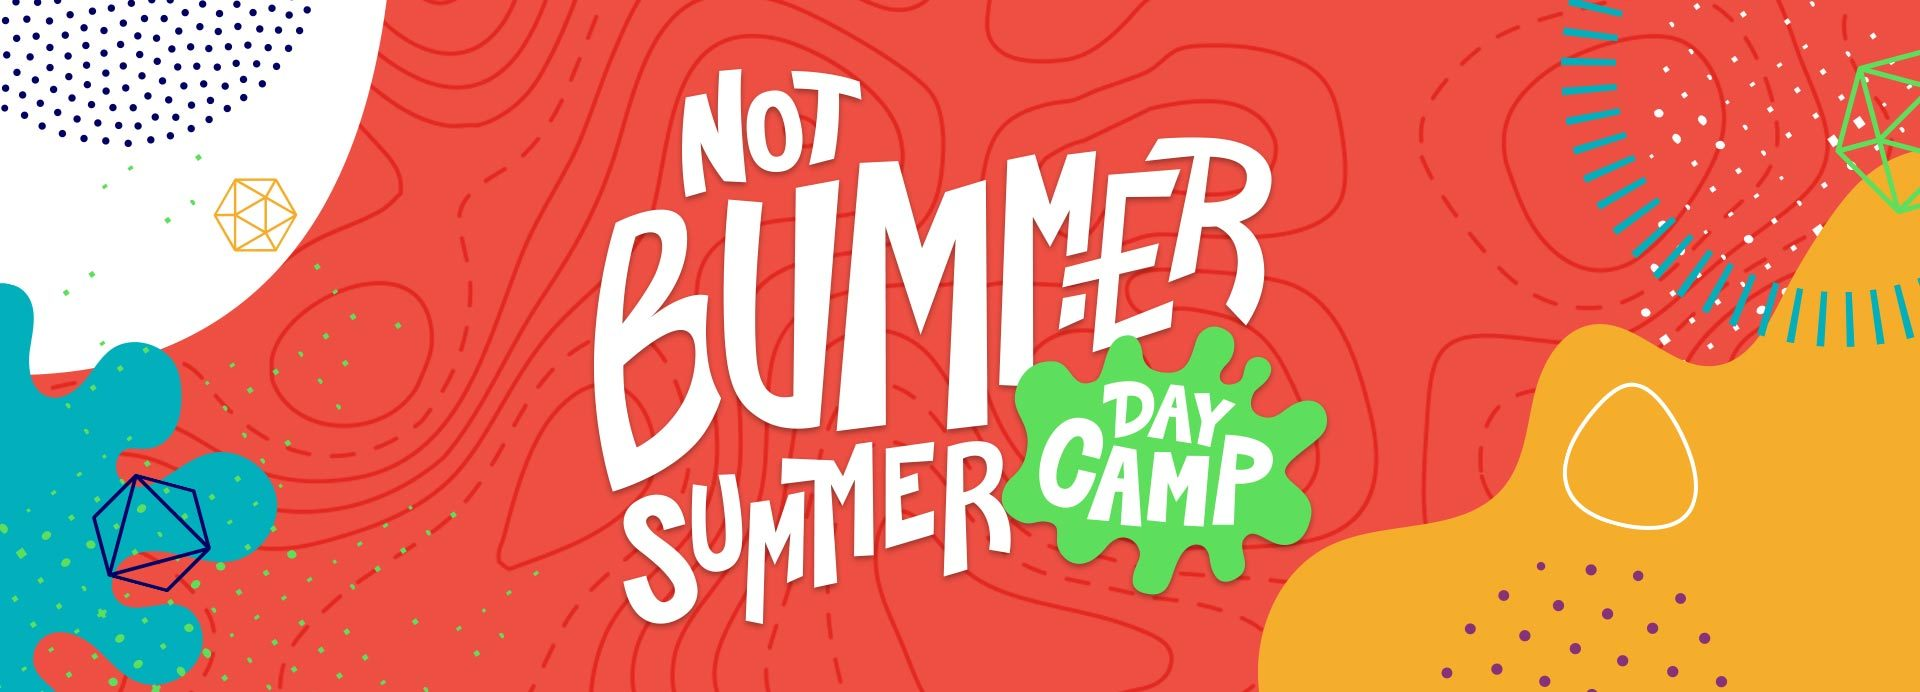 Kotm Not Bummer Summer Day Camp Banner